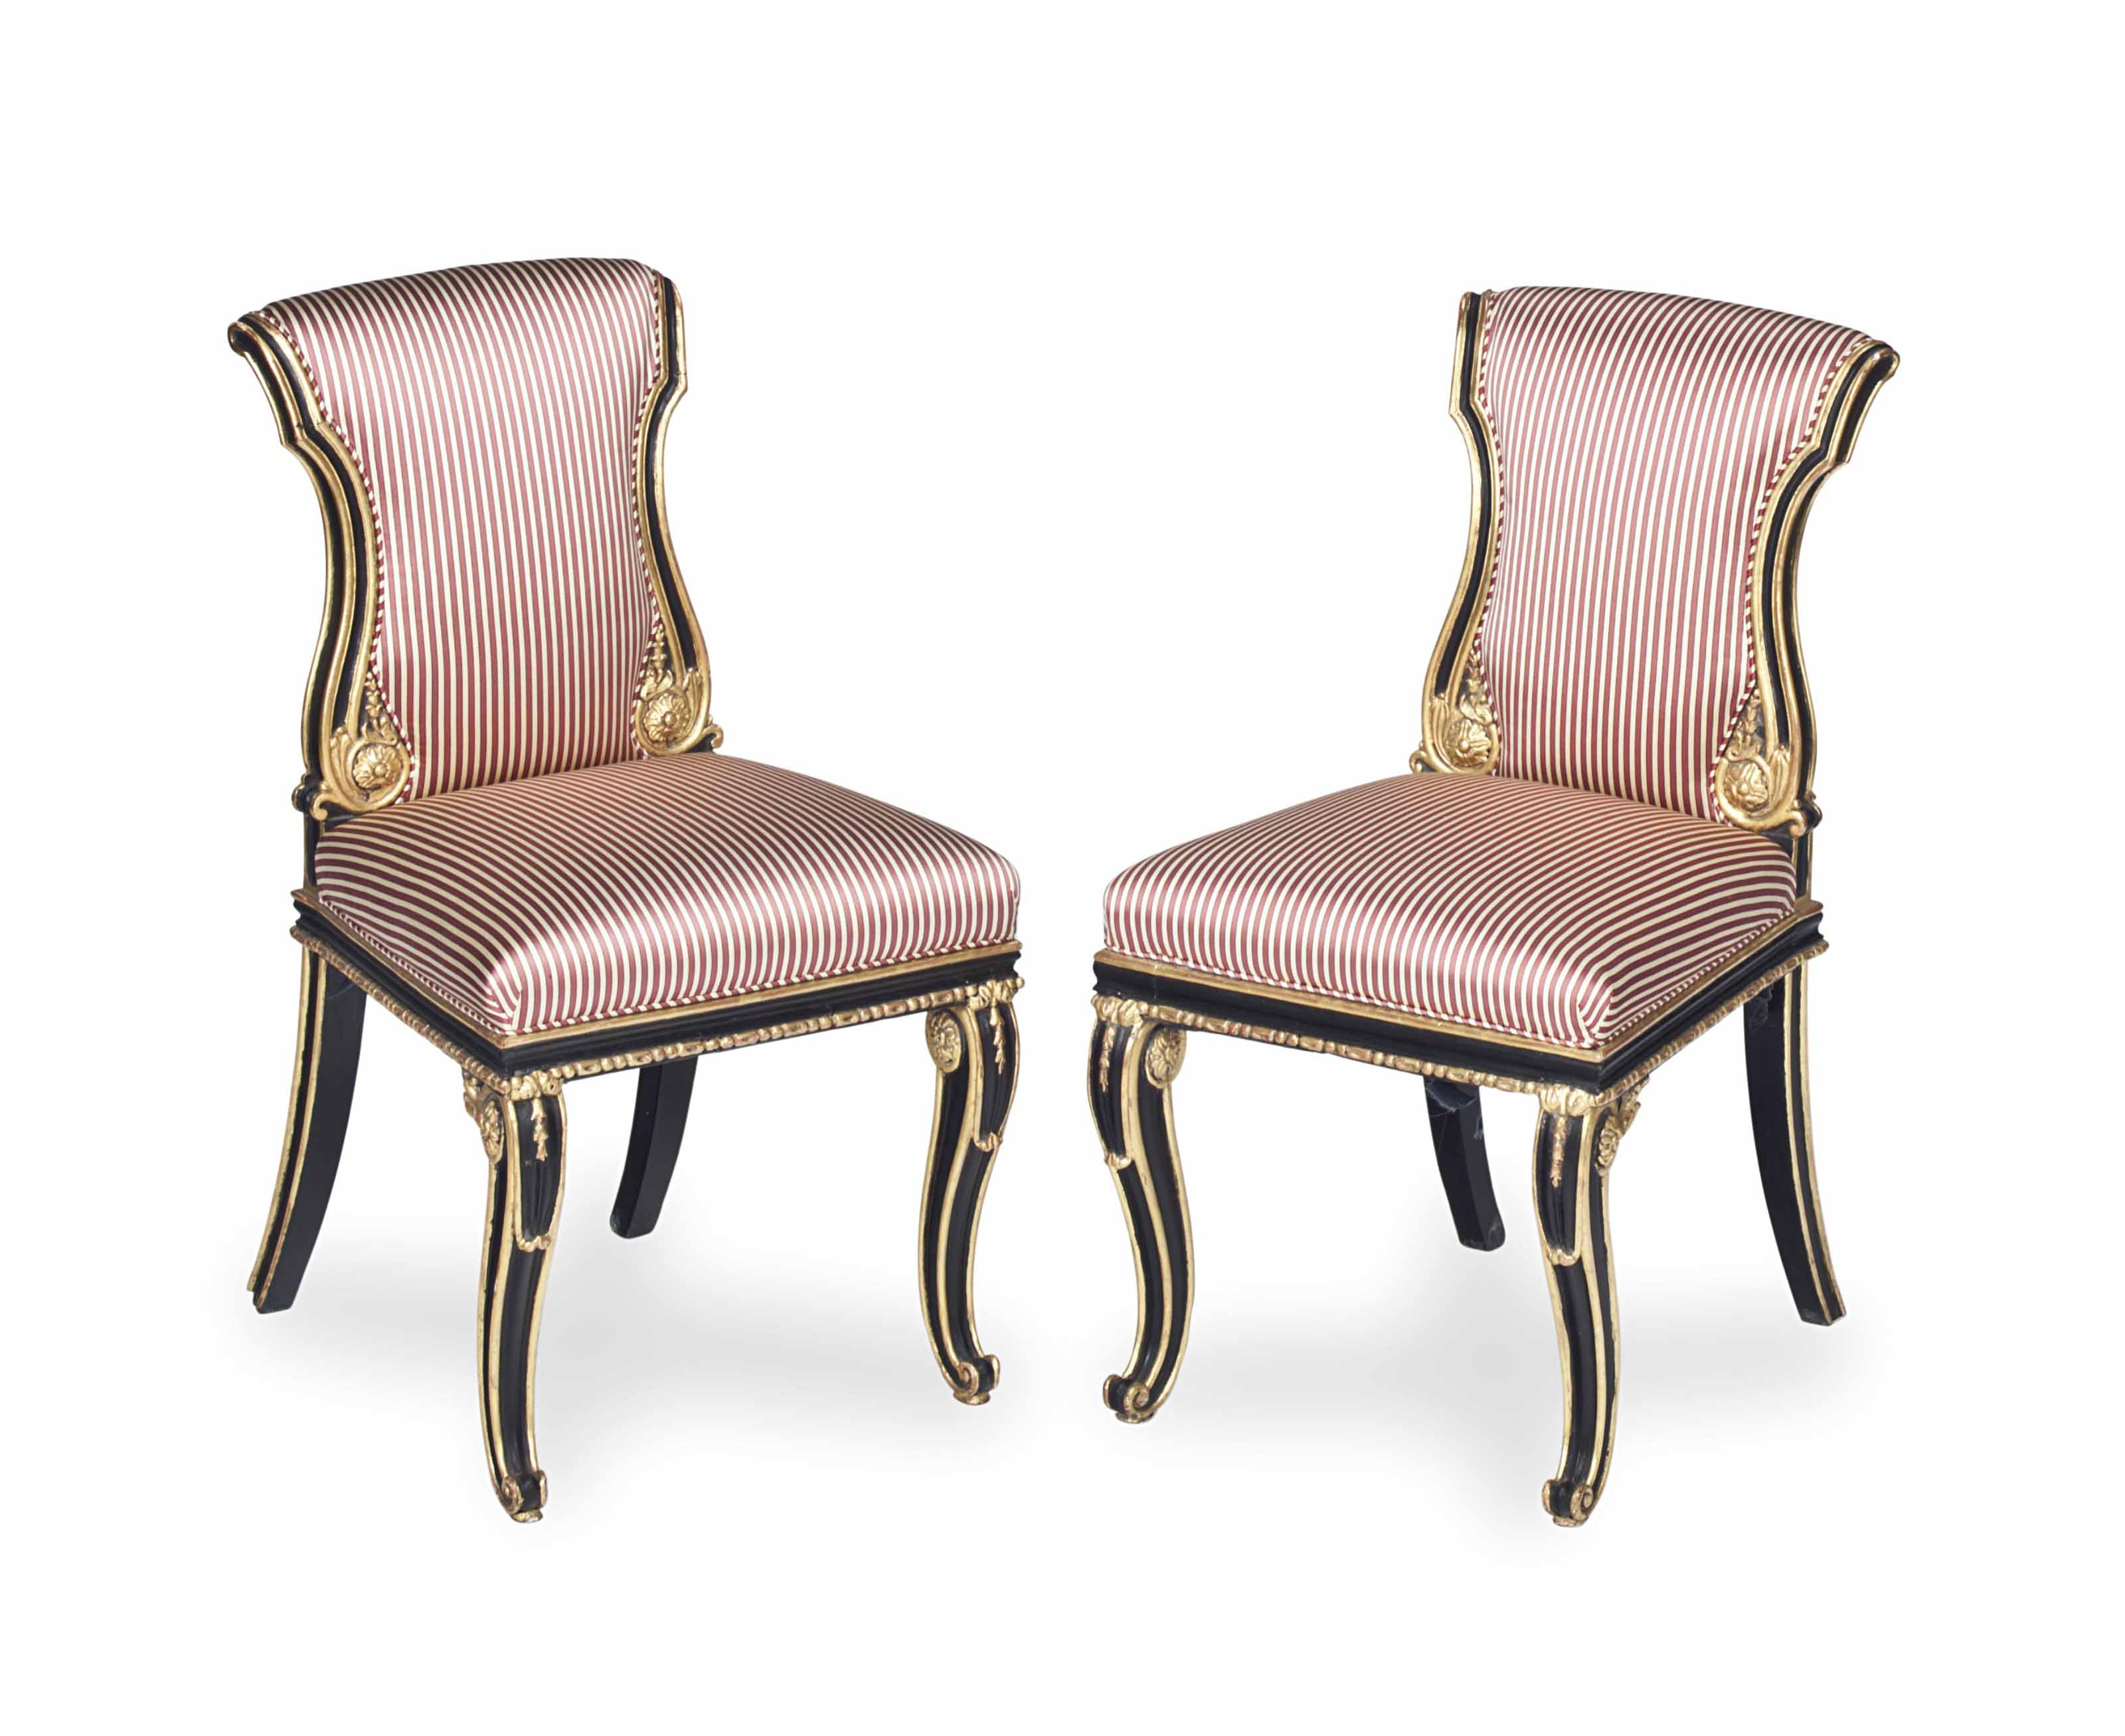 A PAIR OF FRENCH EBONIZED AND